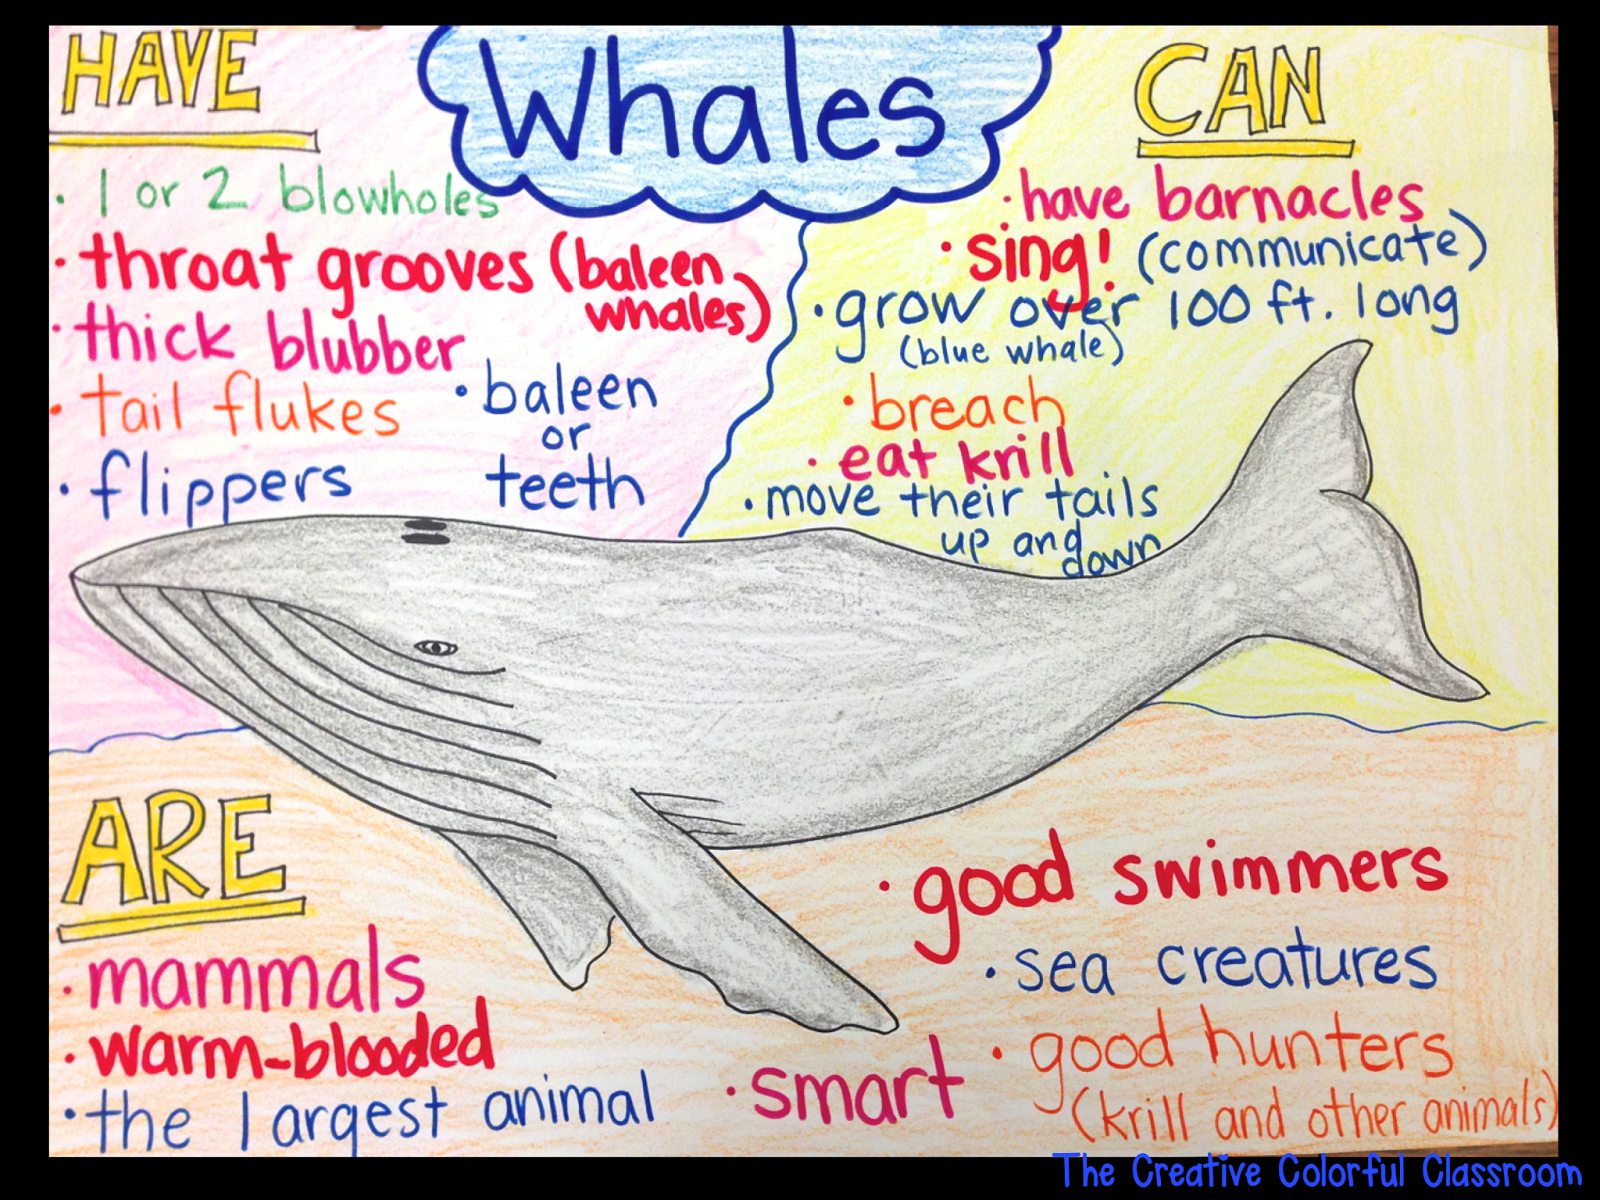 When conducting our ocean research this year, my students and I needed to find a way to record the information we were learning from inform...